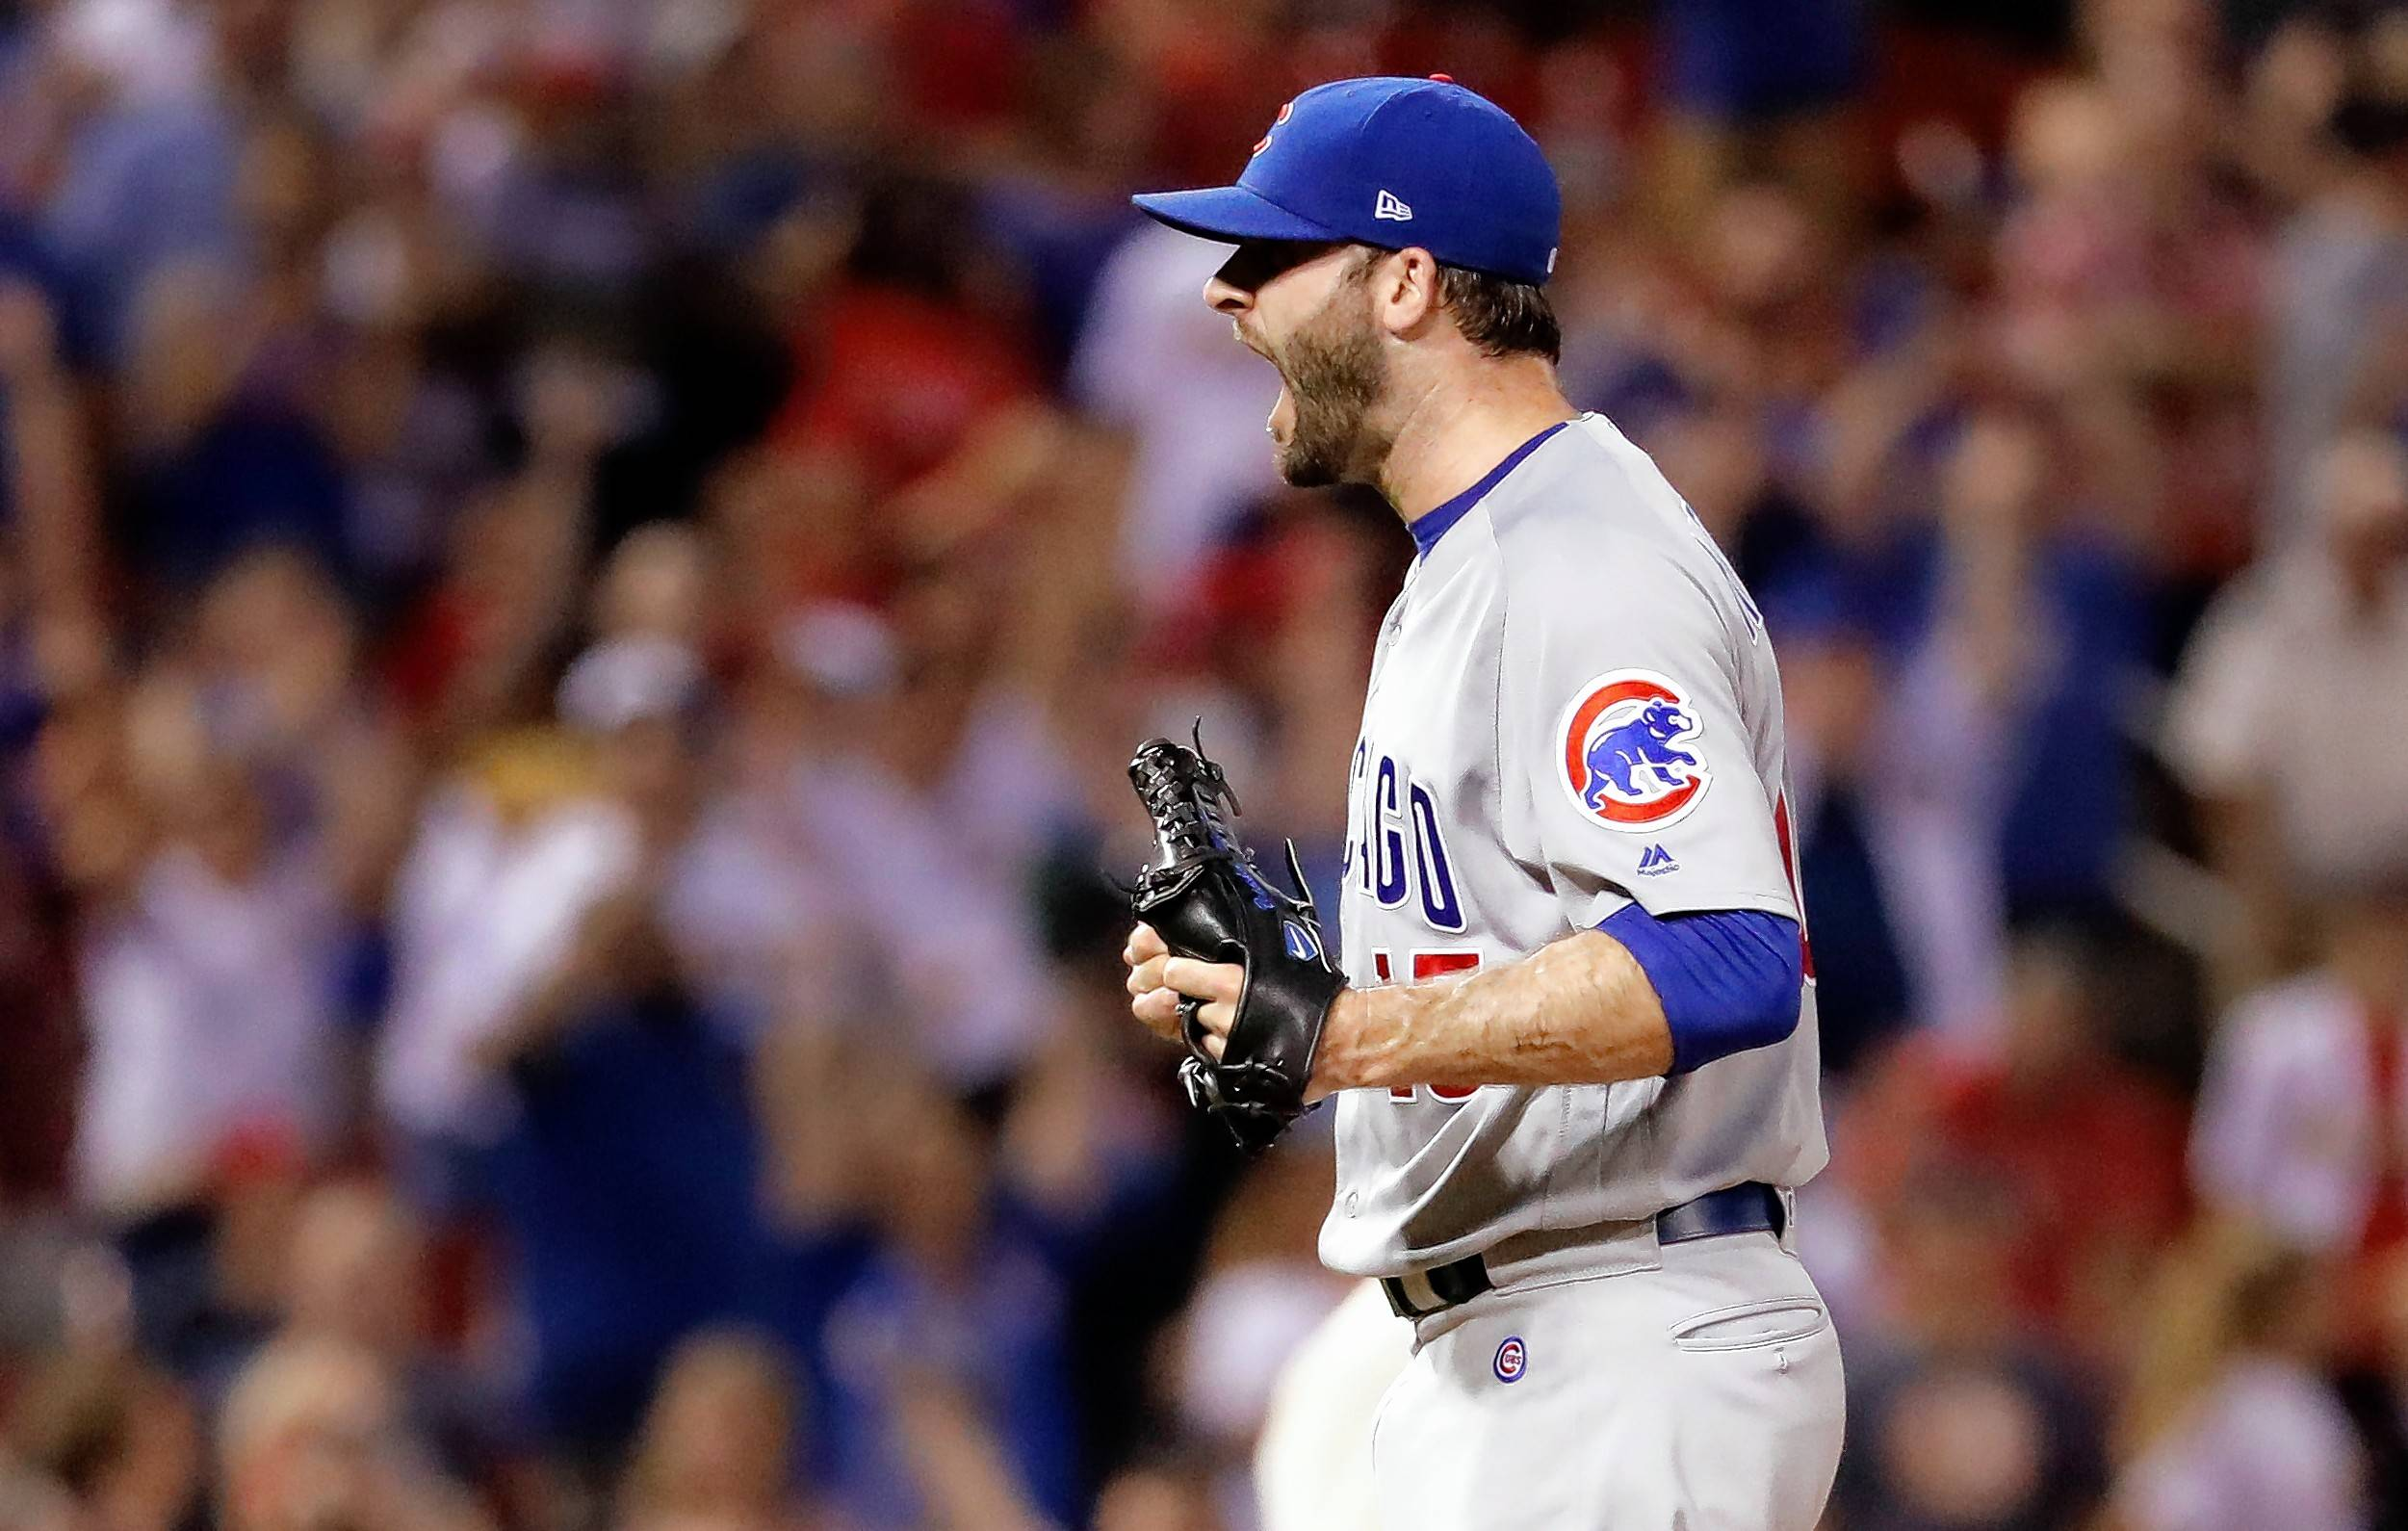 The Chicago Cubs have shut down injured closer Brandon Morrow, but team president Theo Epstein said Thursday he believes Morrow will pitch this season.